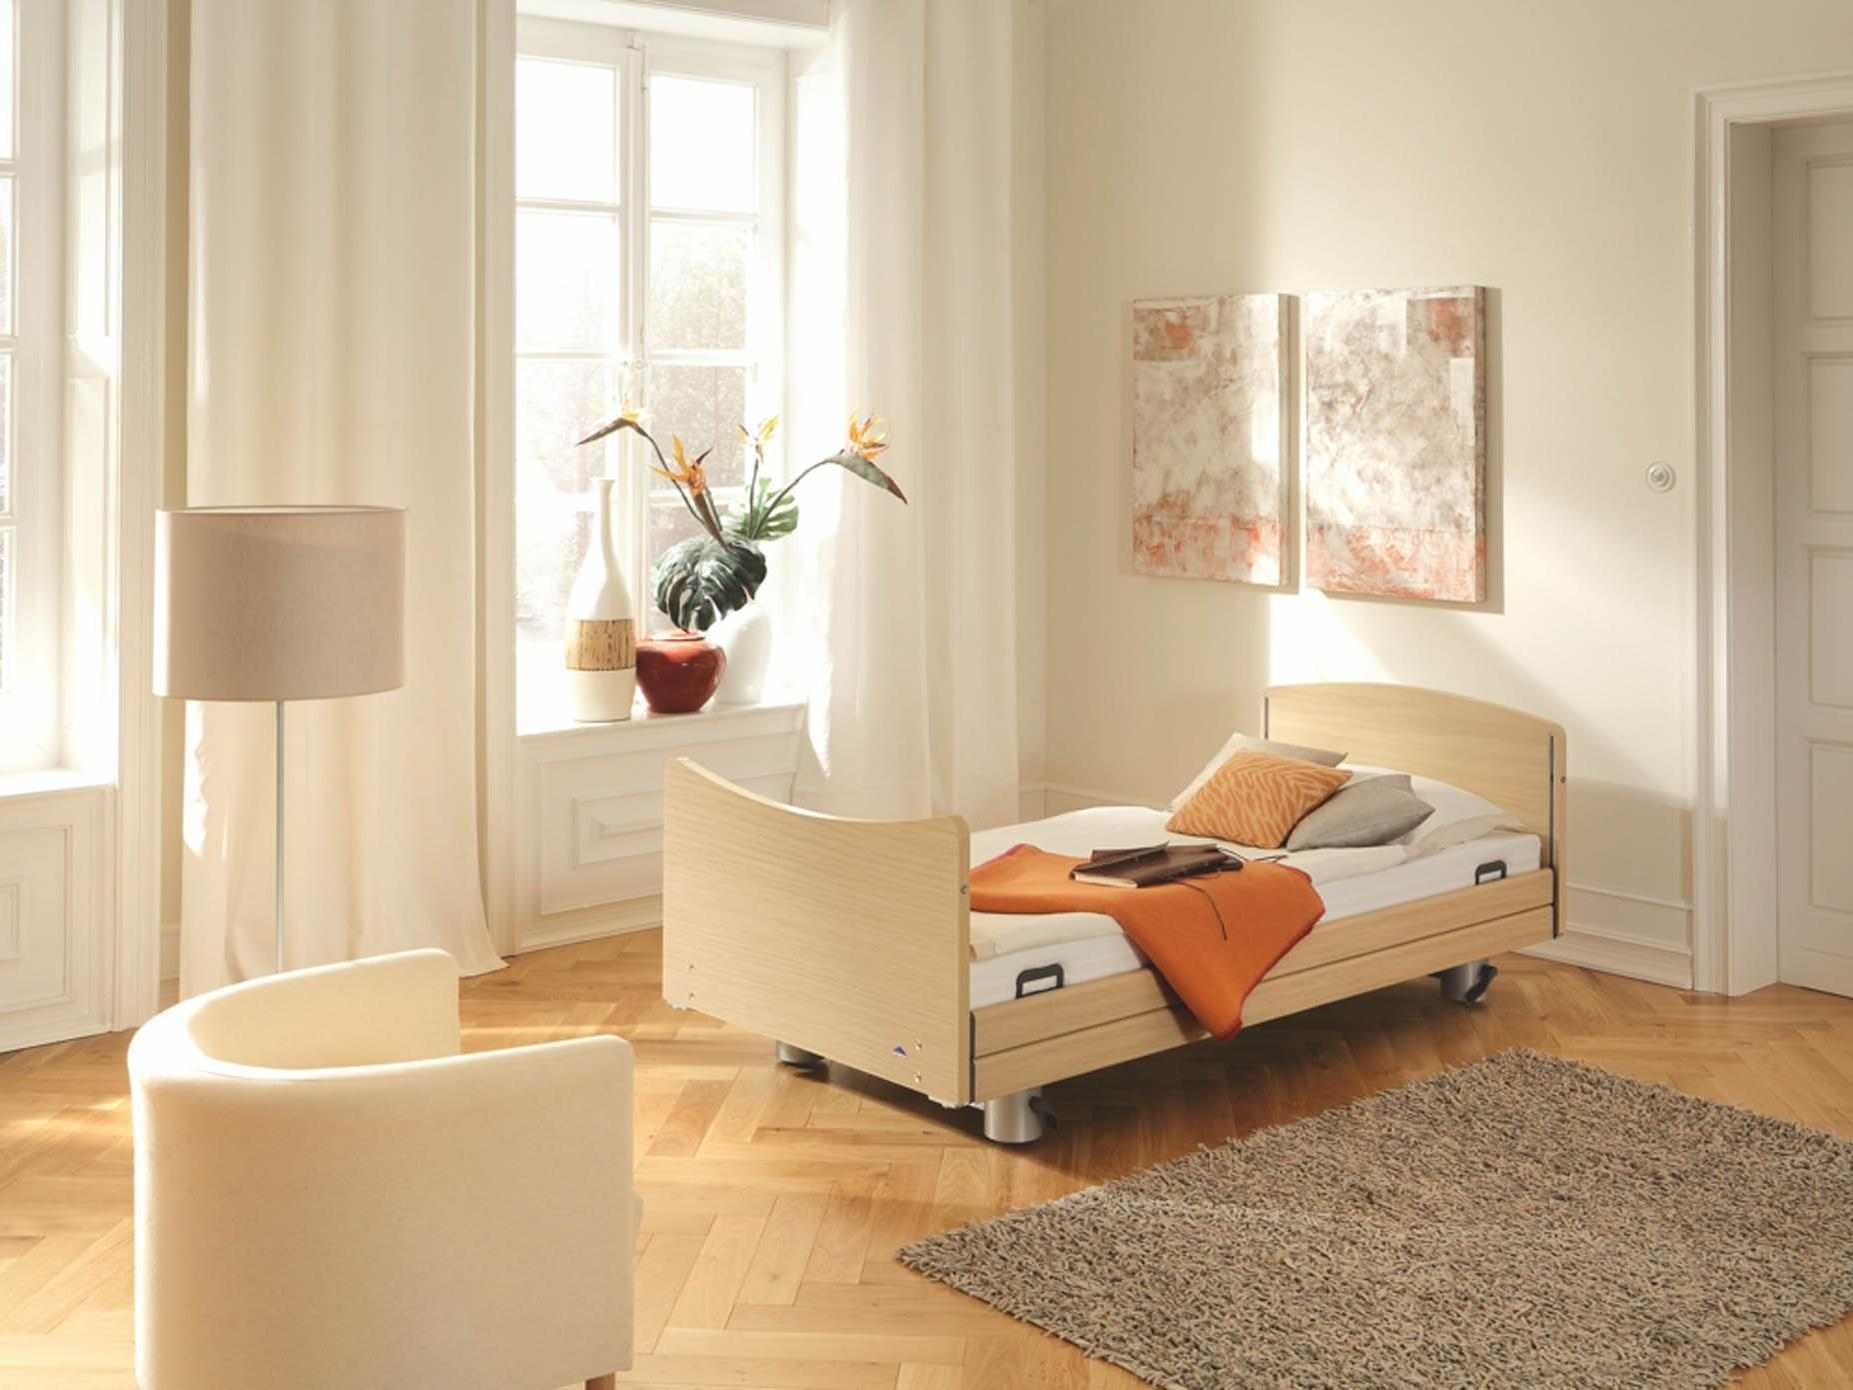 Elvido brevo low-height bed for fall prevention